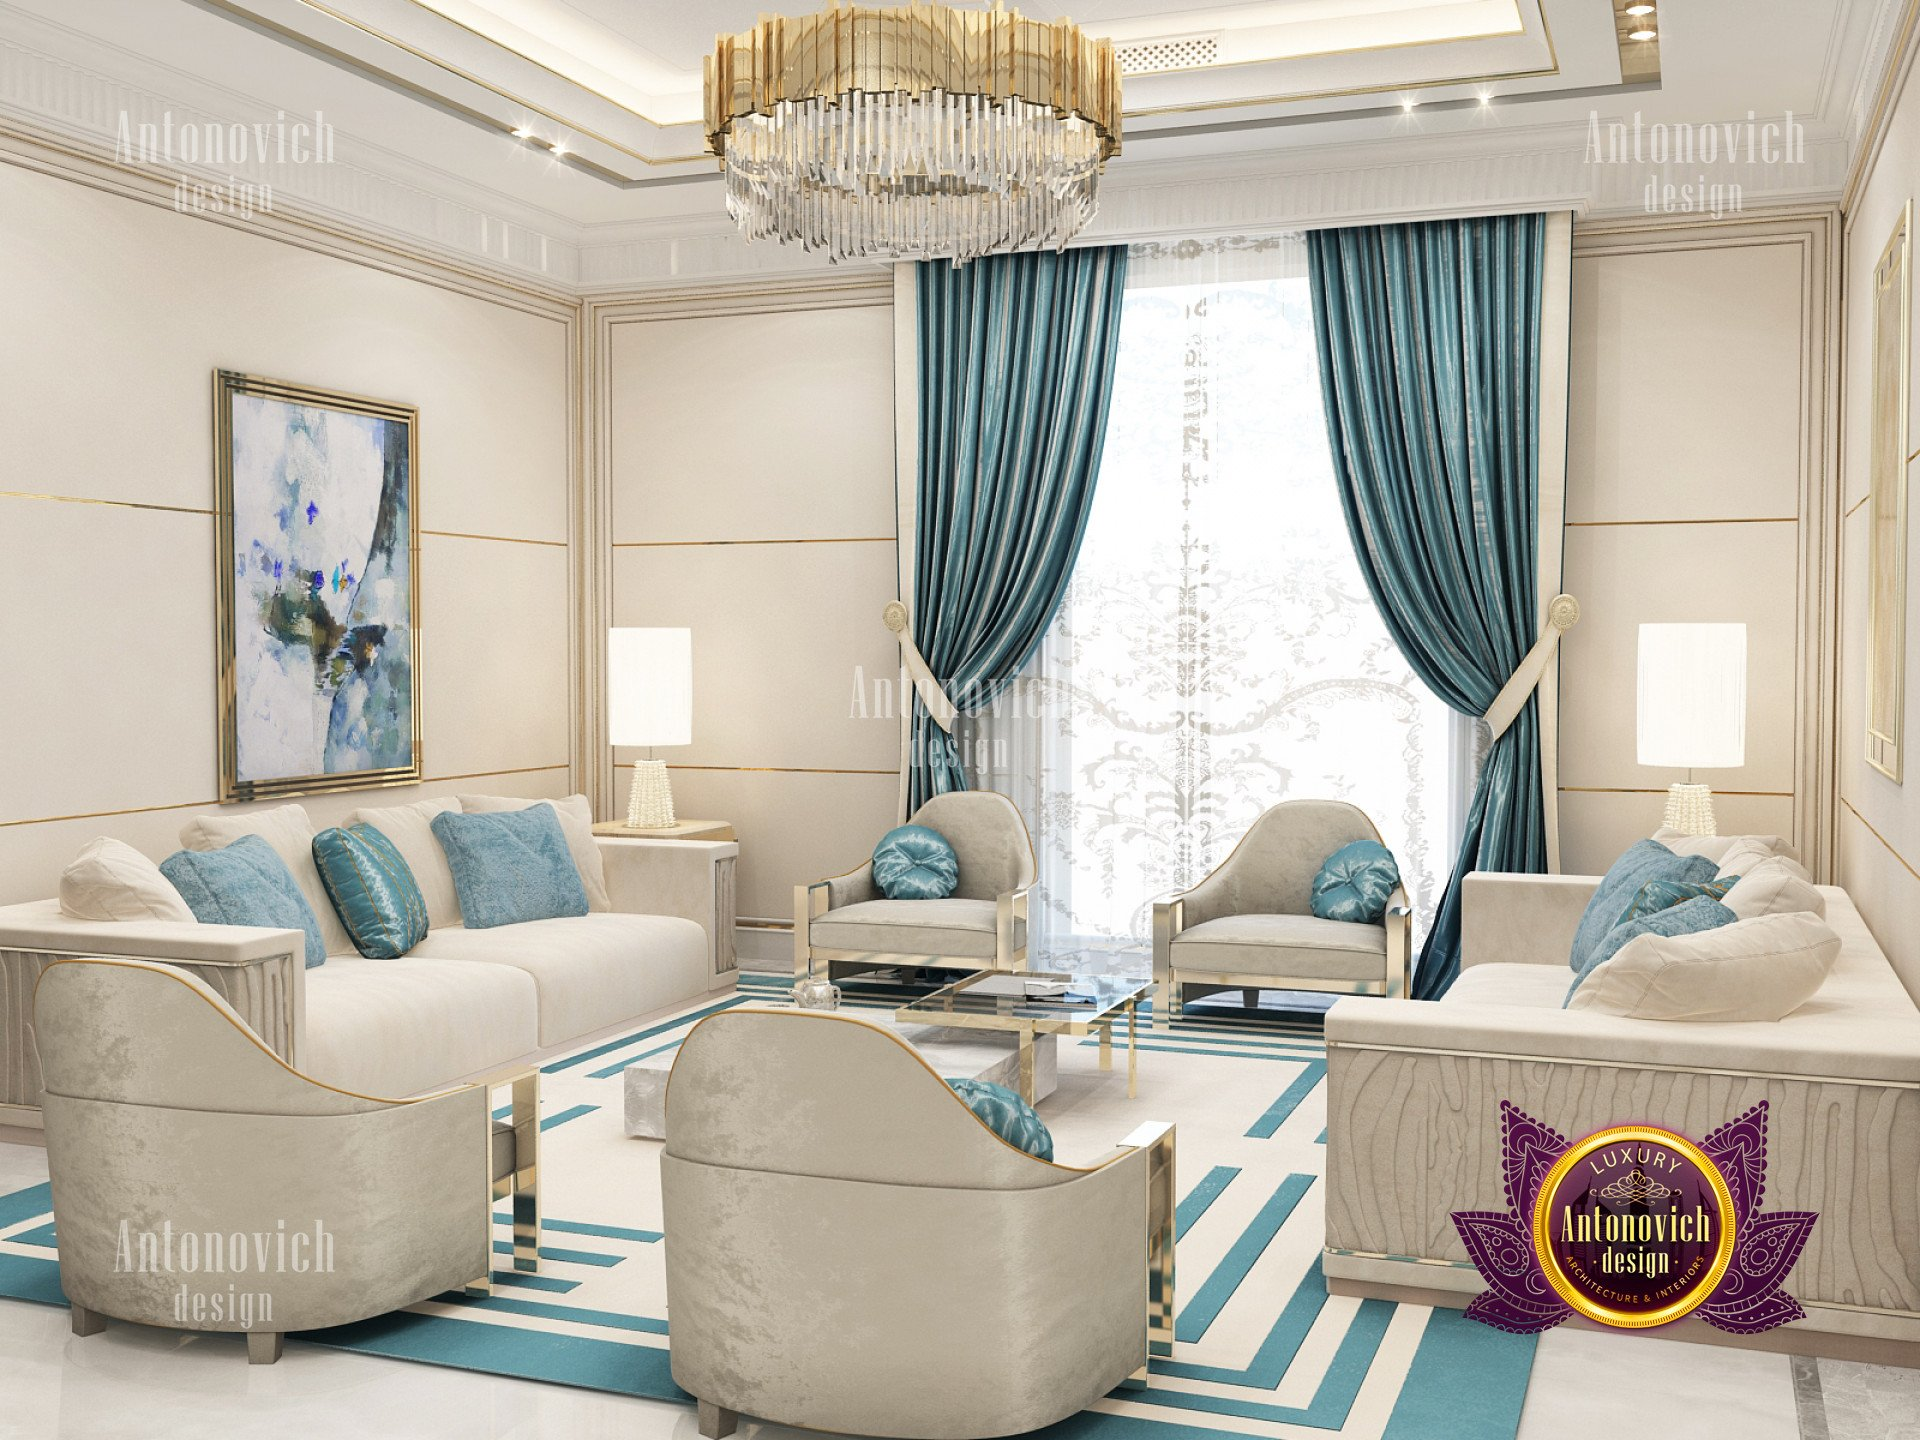 Small living room modern decor on Small Room Decoration  id=21048